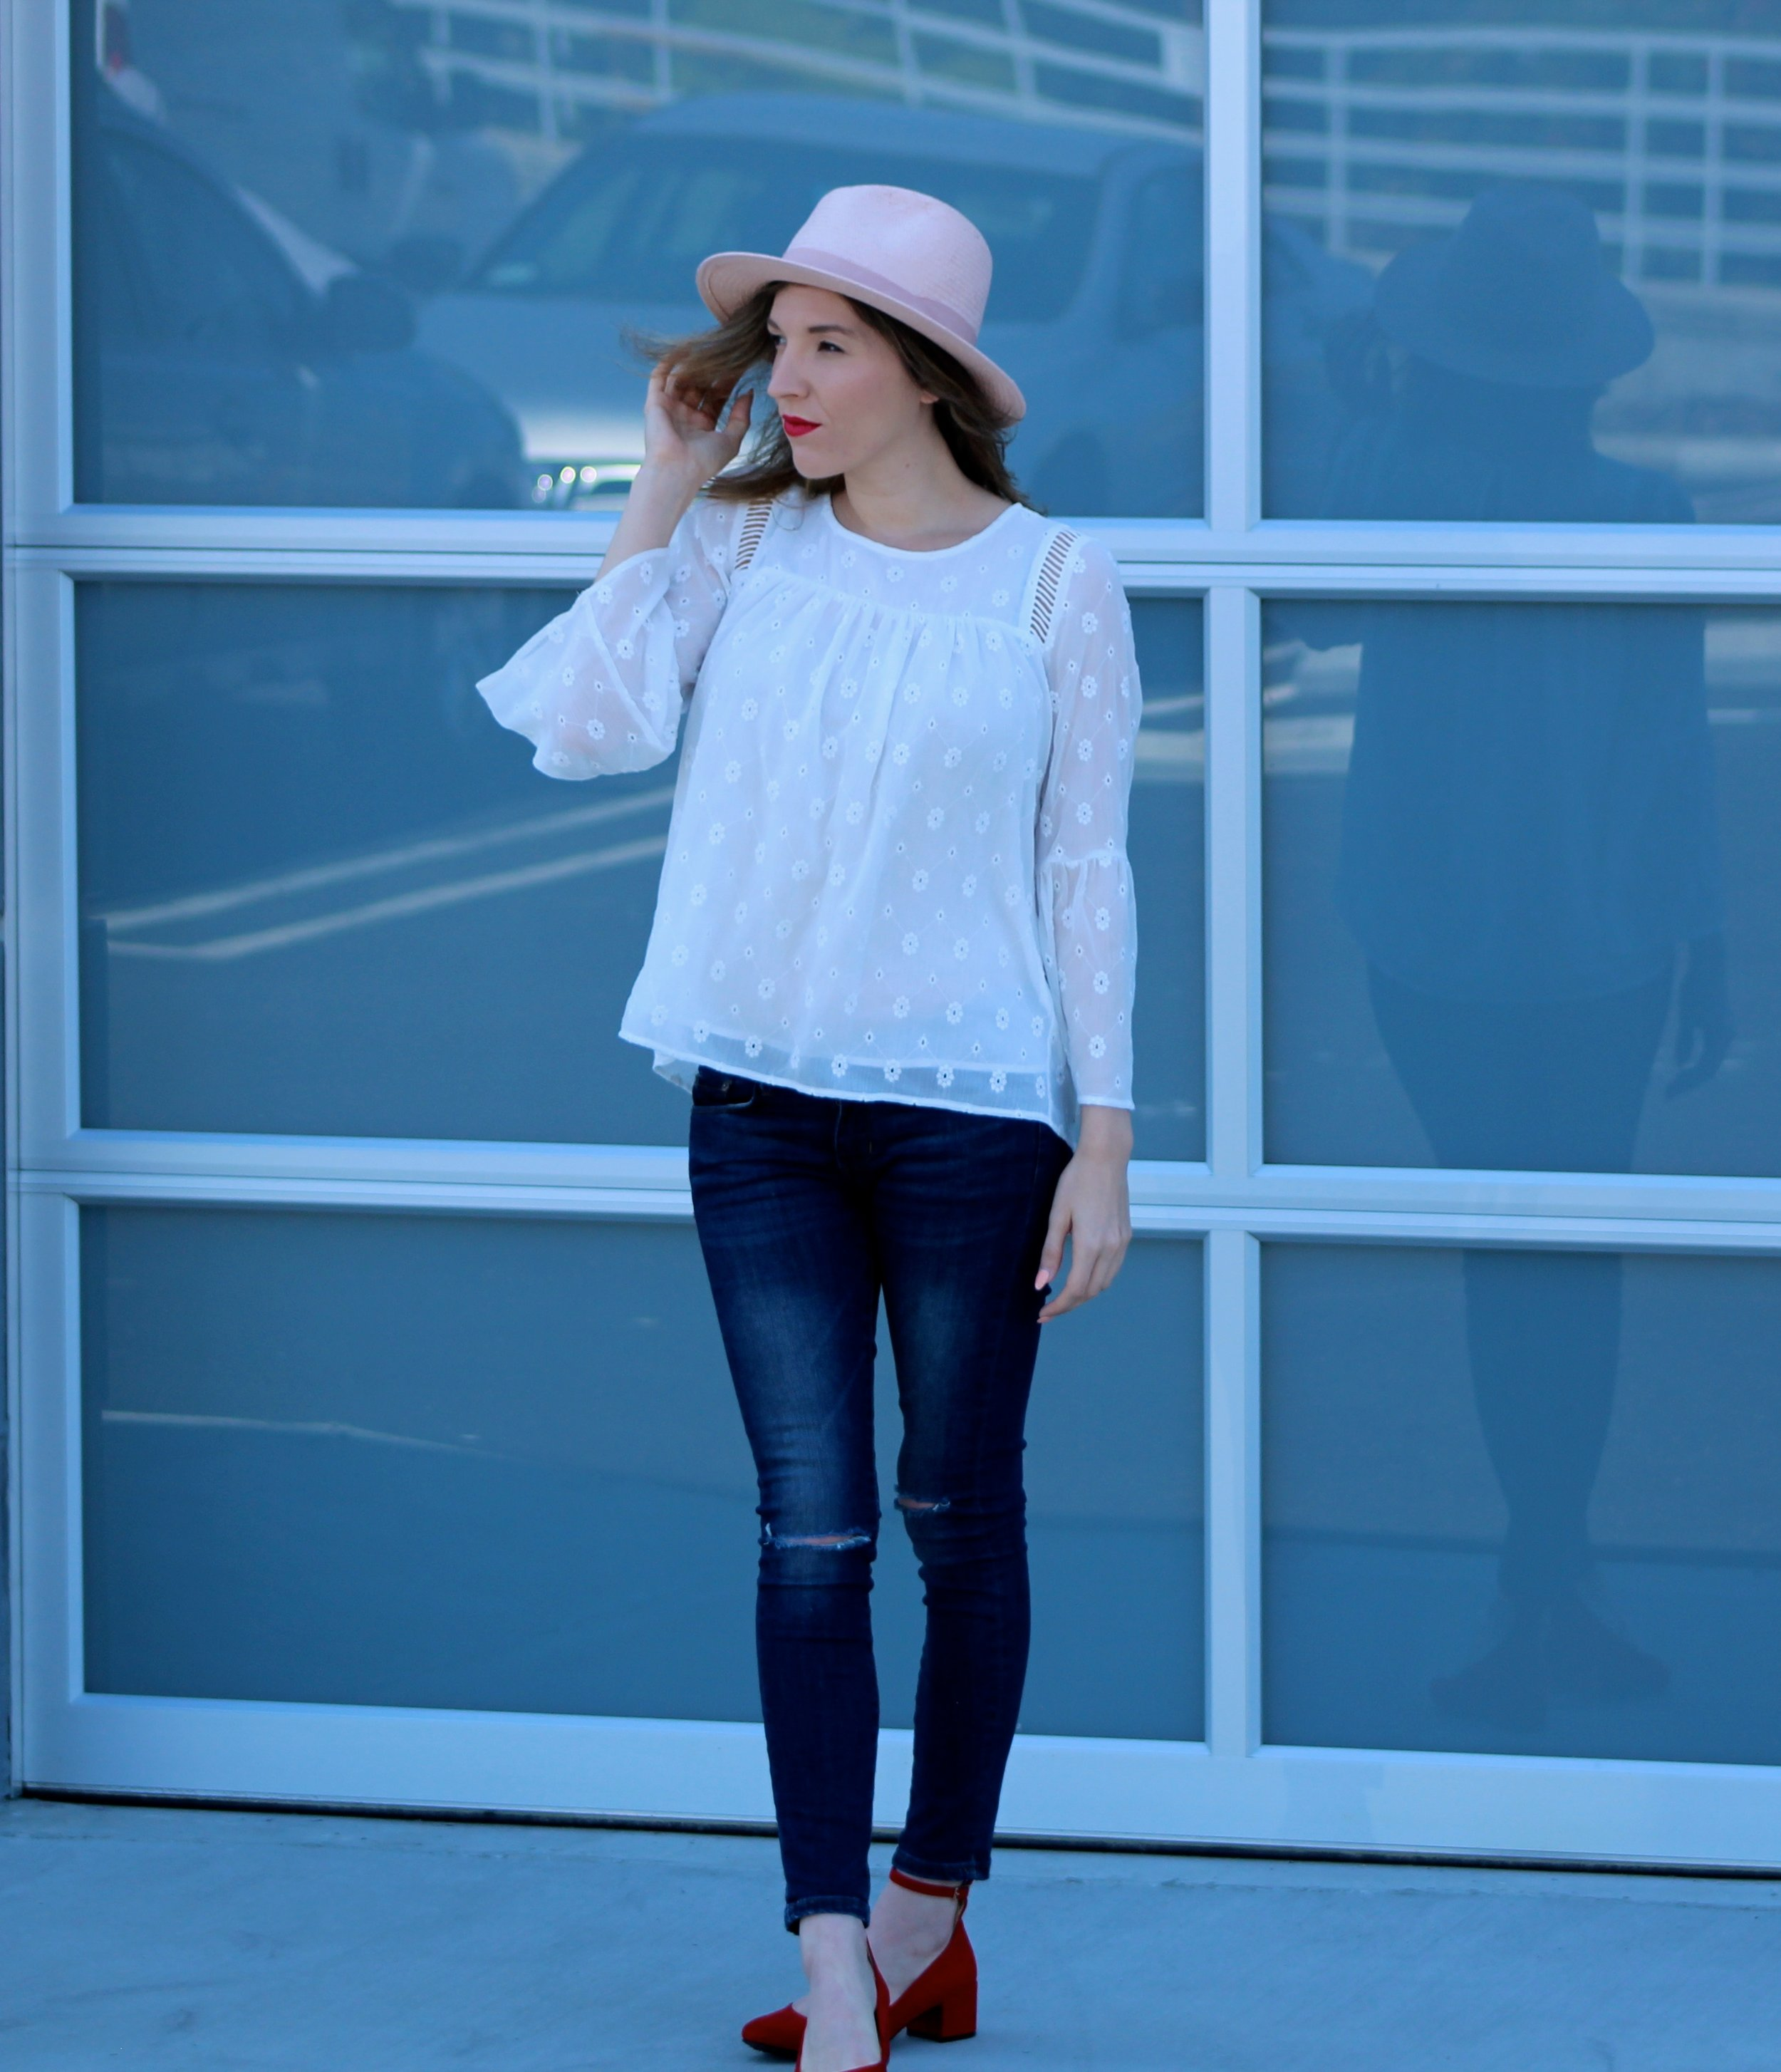 Top :  Loft  ( ON SALE!!! )//  Jeans :  Banana Republic  //  Shoes :  Chinese Laundry  //  Hat :  Banana Republic Factory     Hello and happy Wednesday! Above are two of my newest favorite items! This daisy eyelet top first of all, is one of the cutest tops I have ever seen! It is so girly and I love the bell sleeves. I have been dying to wear something eyelet this Spring so this top is perfect! The second item is my new pink straw hat- another winner for Spring! Plus, it's pink! These items are so cute and feminine, I am excited to pair more adorable outfits for the Spring months ahead! Loft is killing it with their Spring items lately! There are so many items I am drooling over like this other   eyelet top  , these   pants ,  and this   dress!   Plus, everything is 40% off right now! What could be better!?Thanks for stopping by!  ~ Nicole